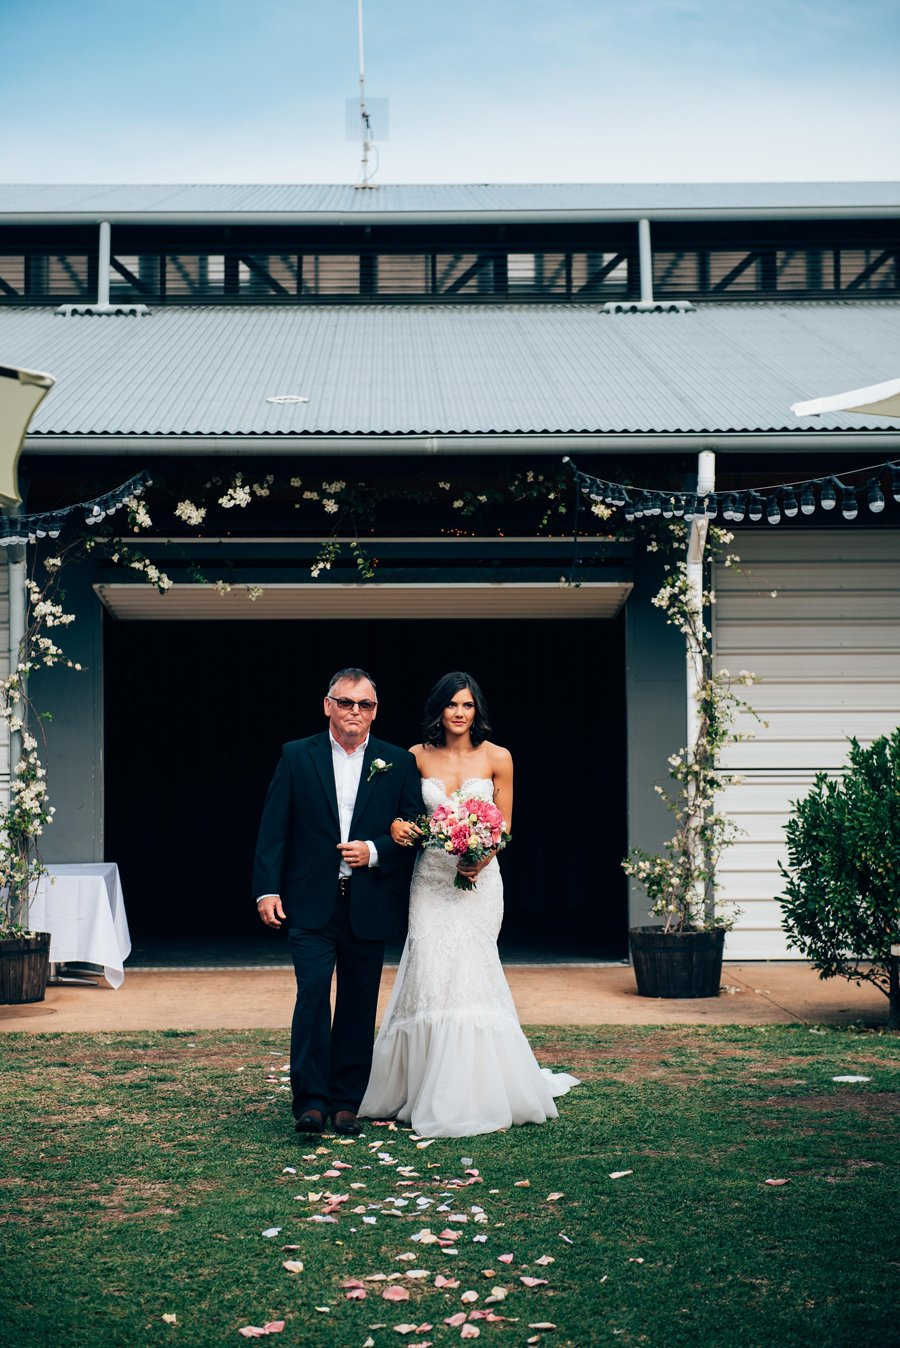 Aimee-Jane and Kristen, Osteria Casuarina Real Wedding, Tweed Coast Wedding Venue - Photo025